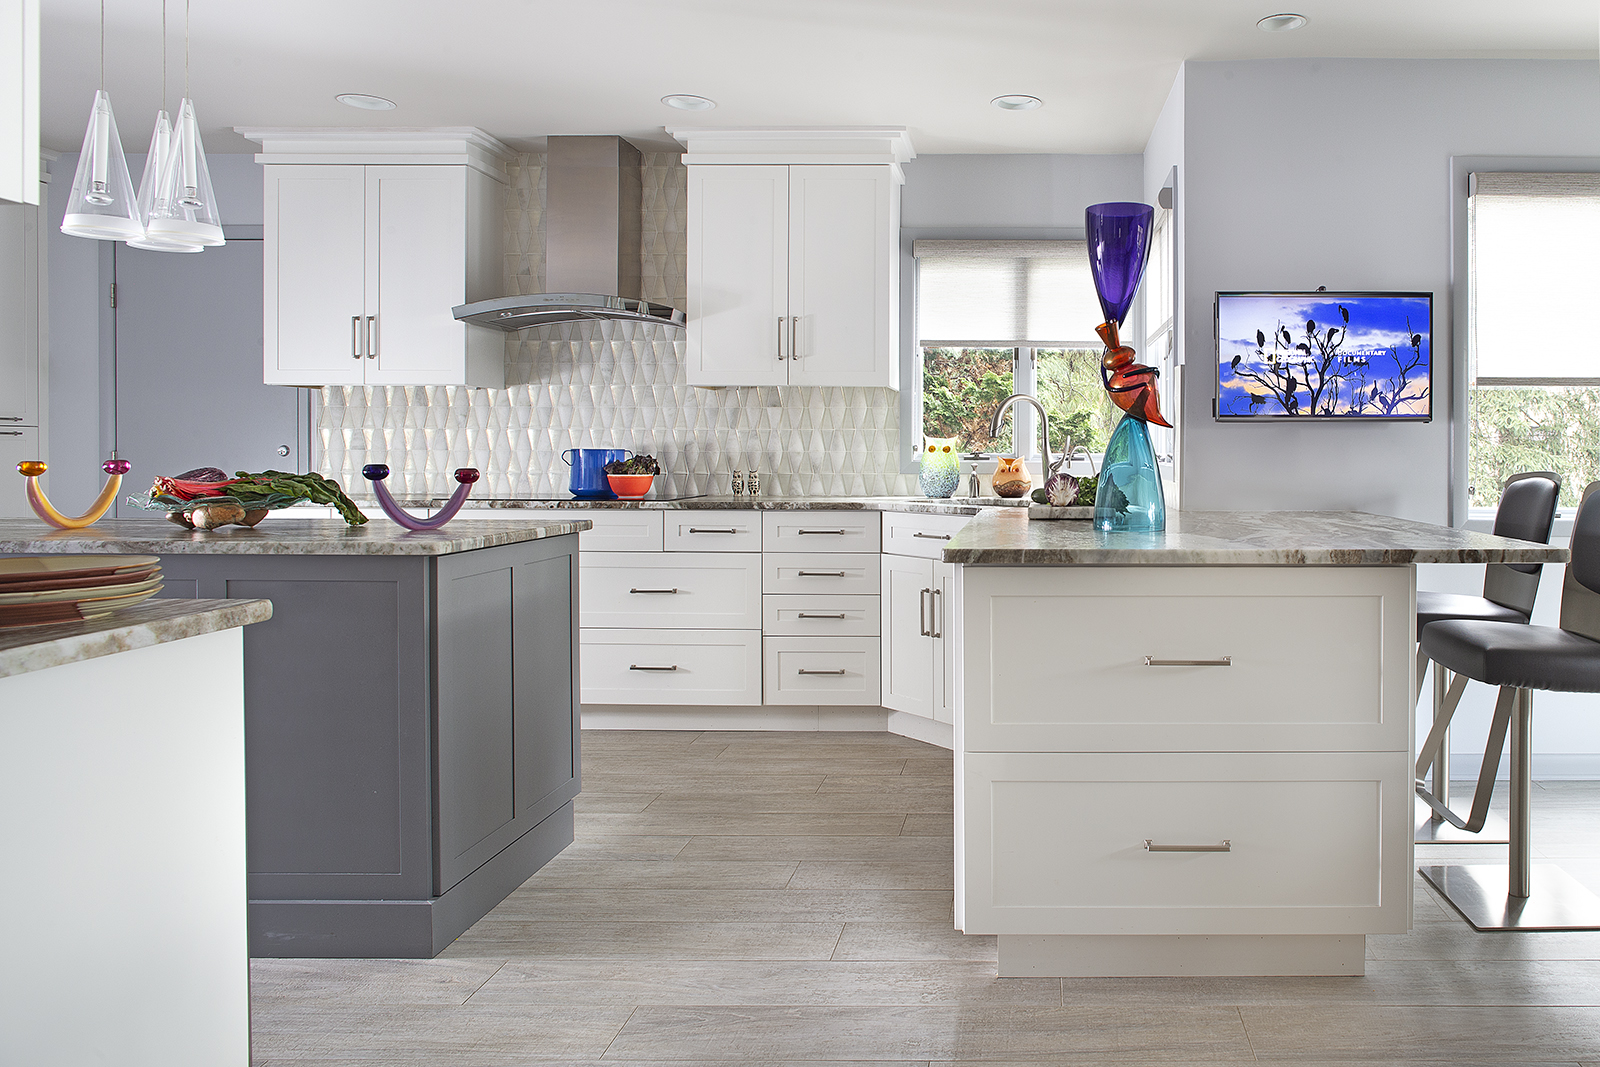 5 top kitchen trends 2019  thyme  place design